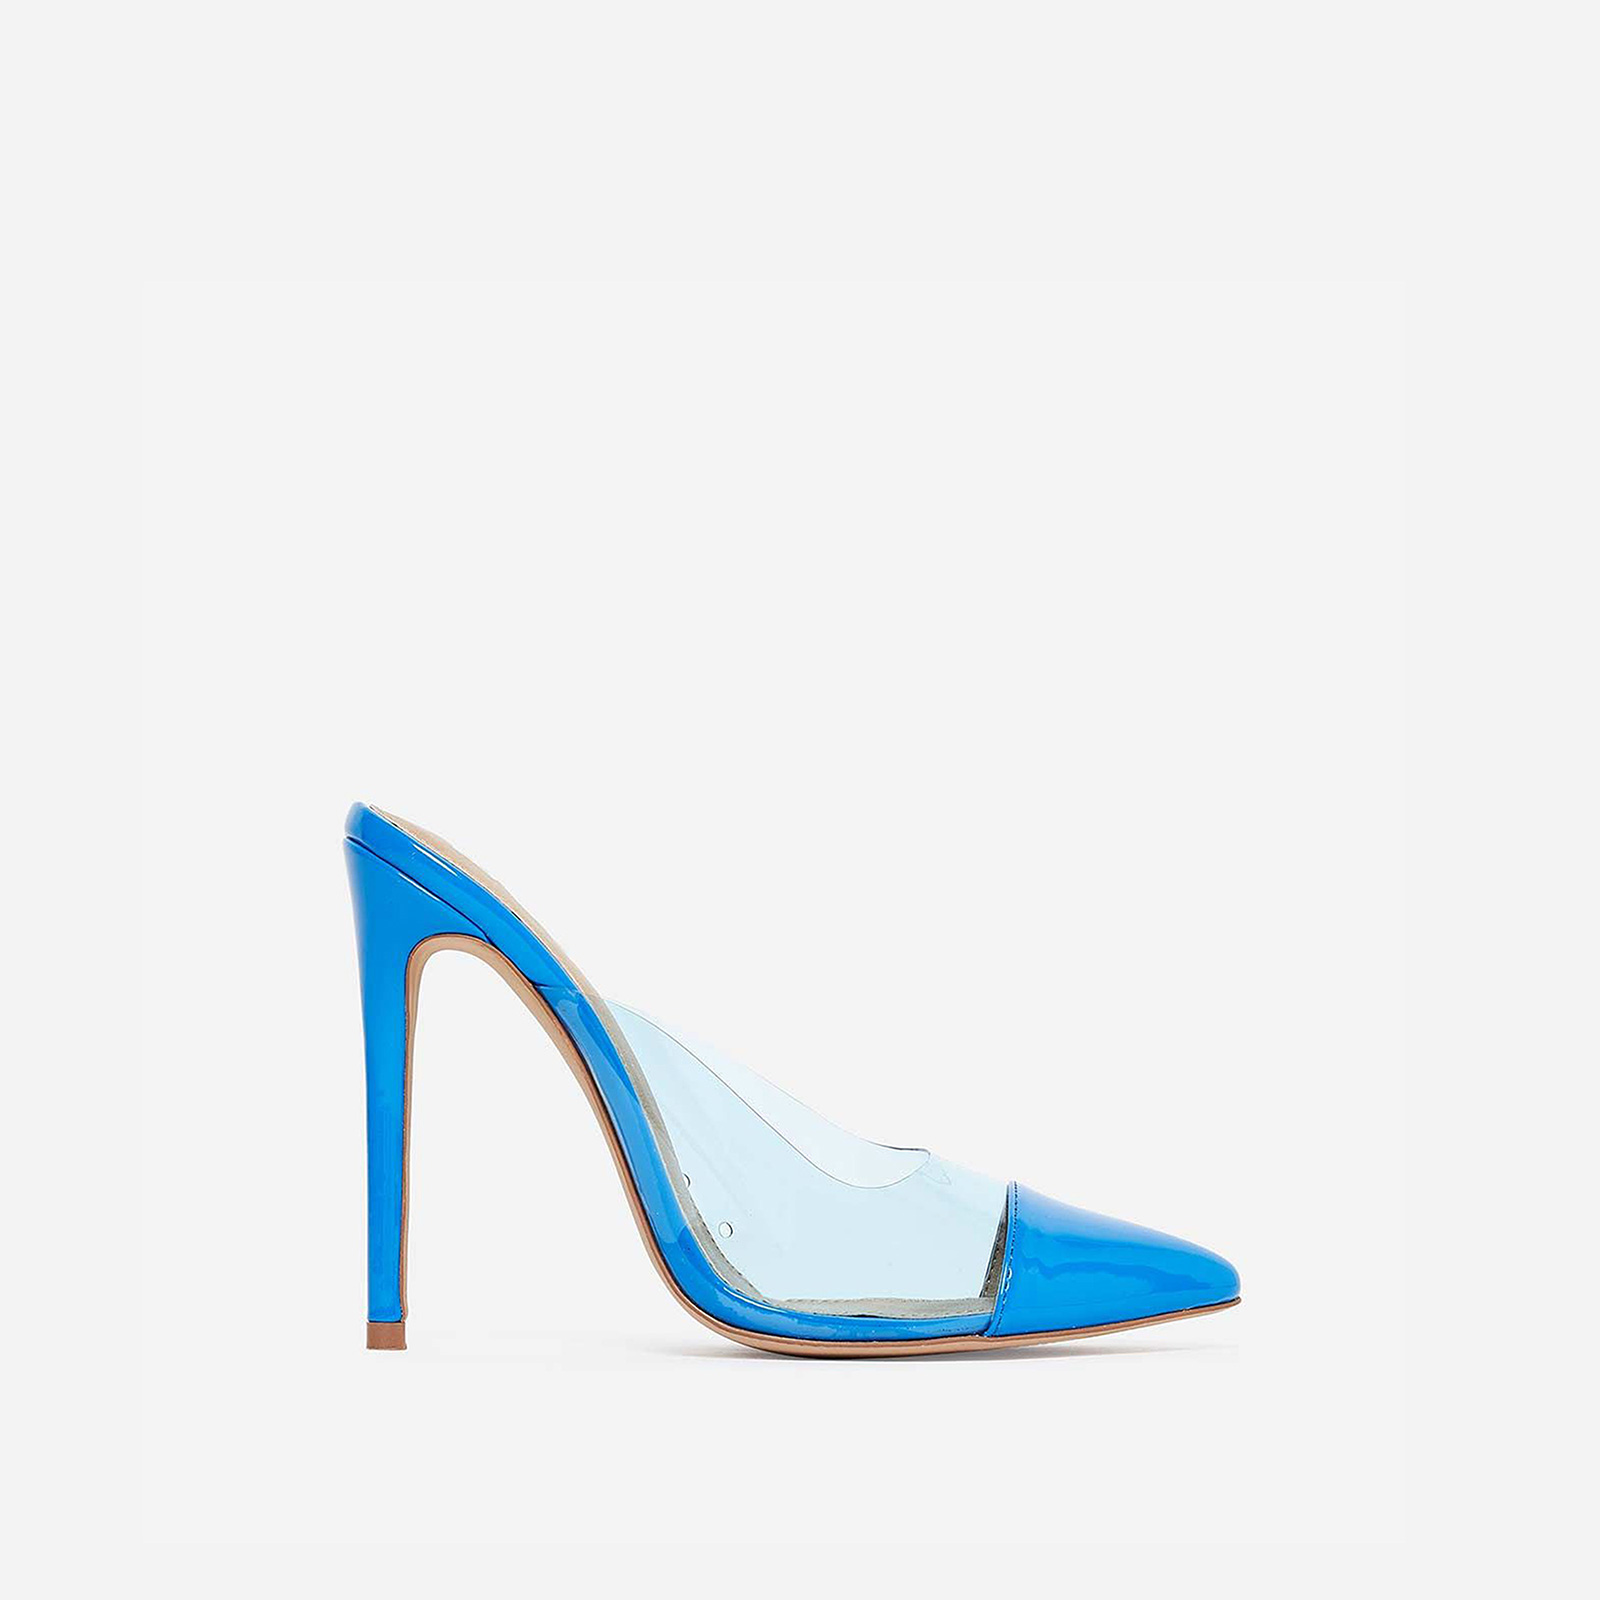 Korra Closed Pointed Toe Perspex Mule In Blue Patent